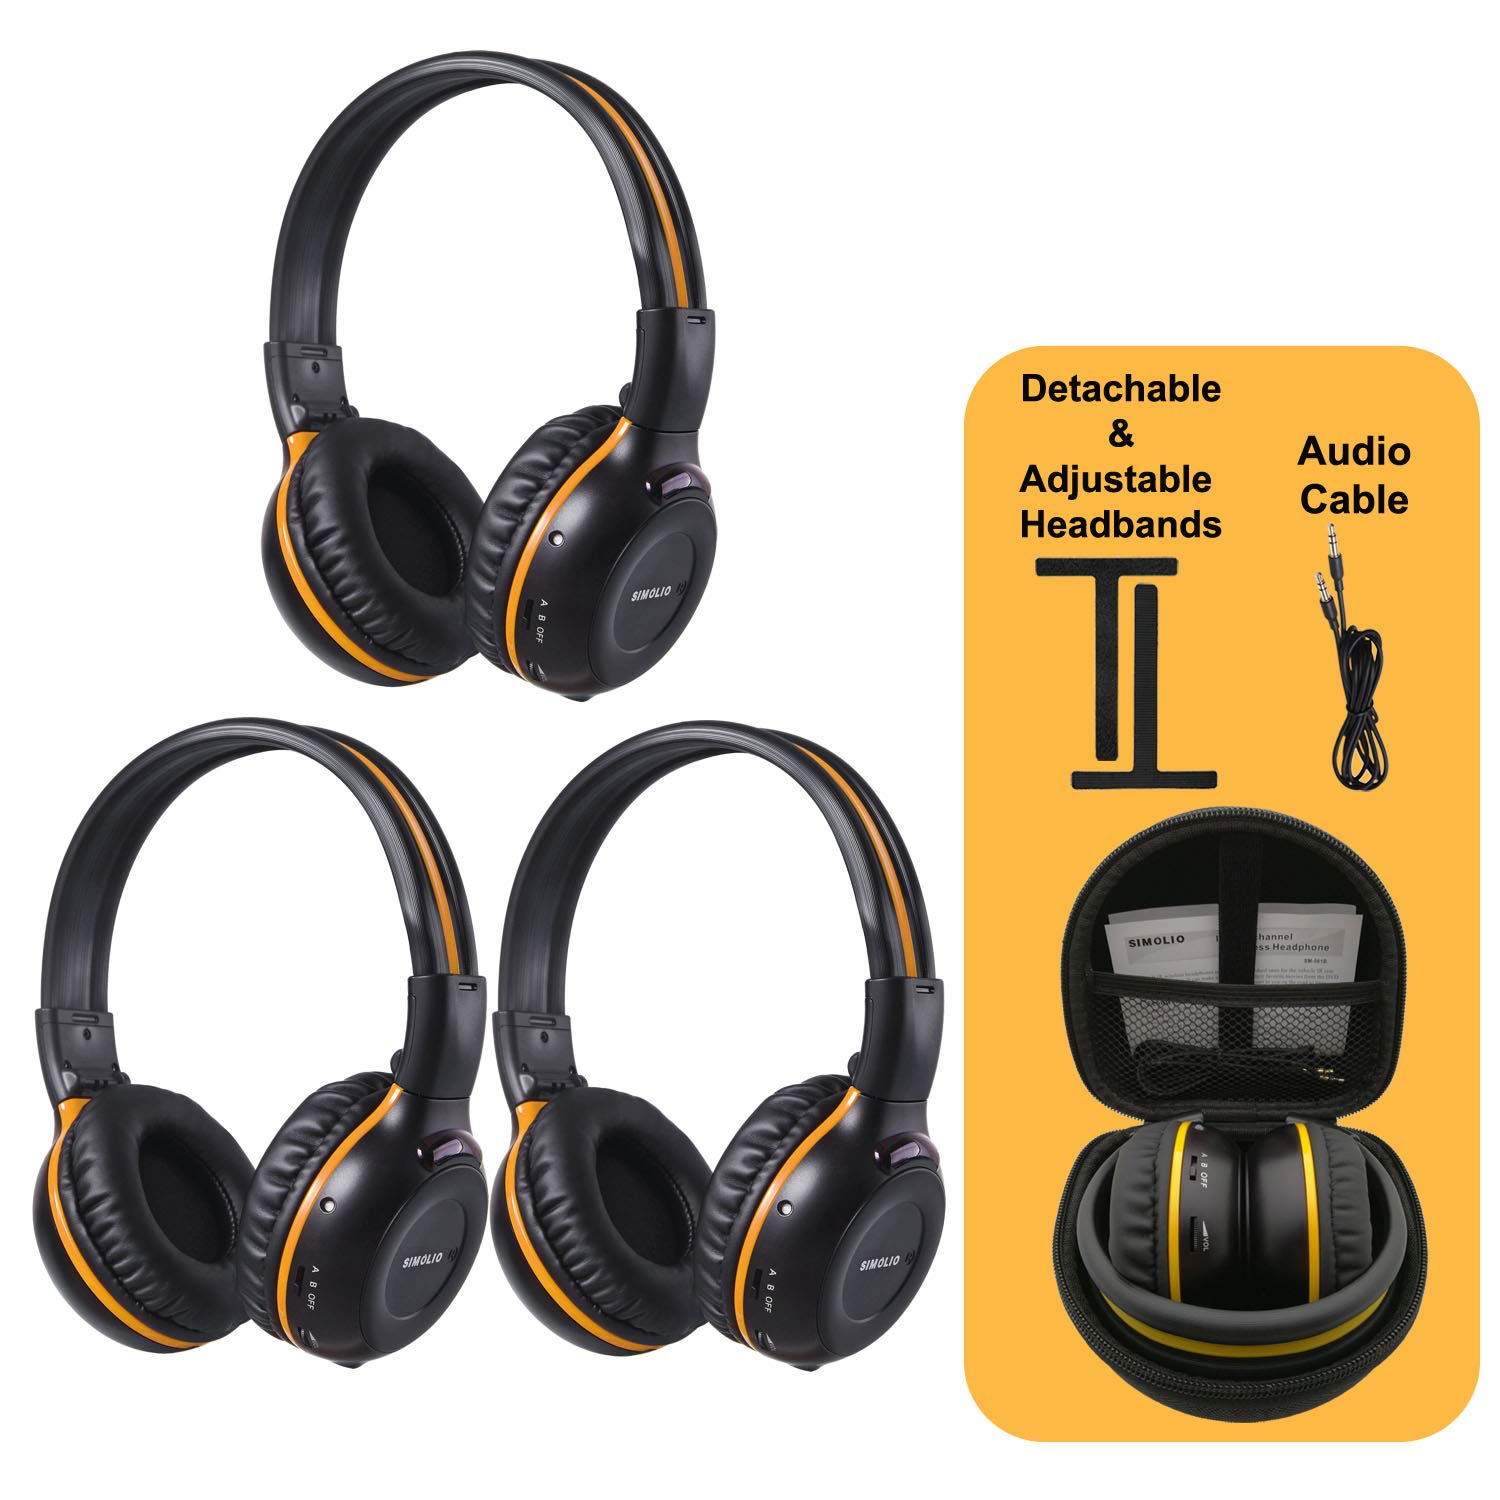 3 Pack of Wireless Car Headphones, Wireless Headphones for Kids, in Car Wireless Headphones with Carrying Case for Universal Rear Entertainment System, 2 Channel Wireless Headphones by SIMOLIO